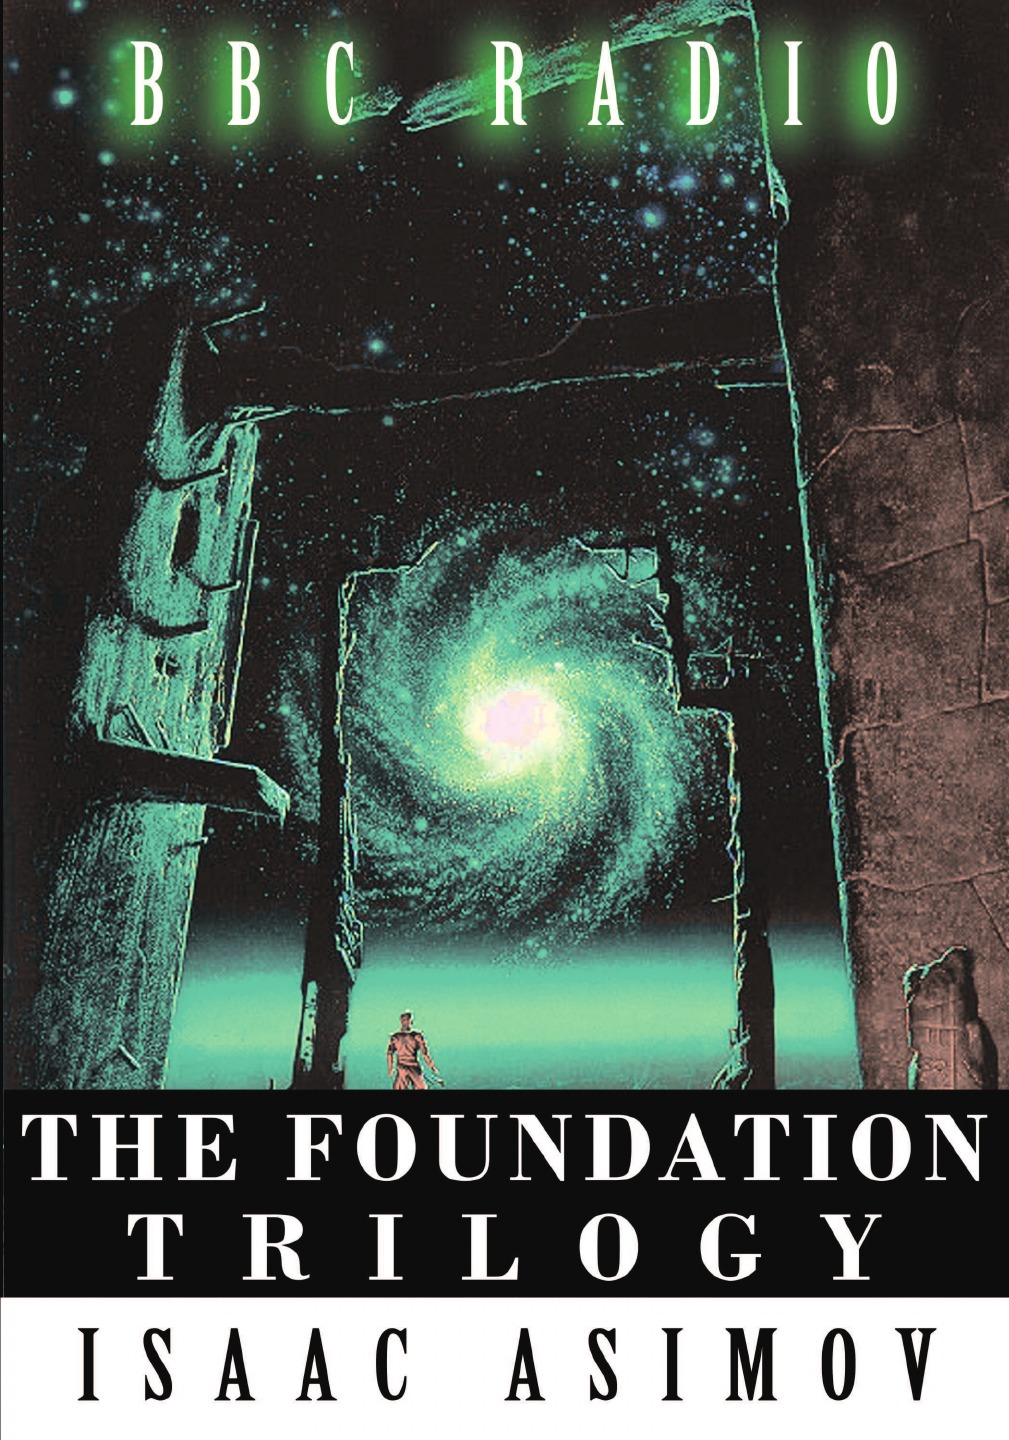 Isaac Asimov The Foundation Trilogy (Adapted by BBC Radio) This book is a transcription of the radio broadcast the grudgebearer trilogy book 2 oathkeeper